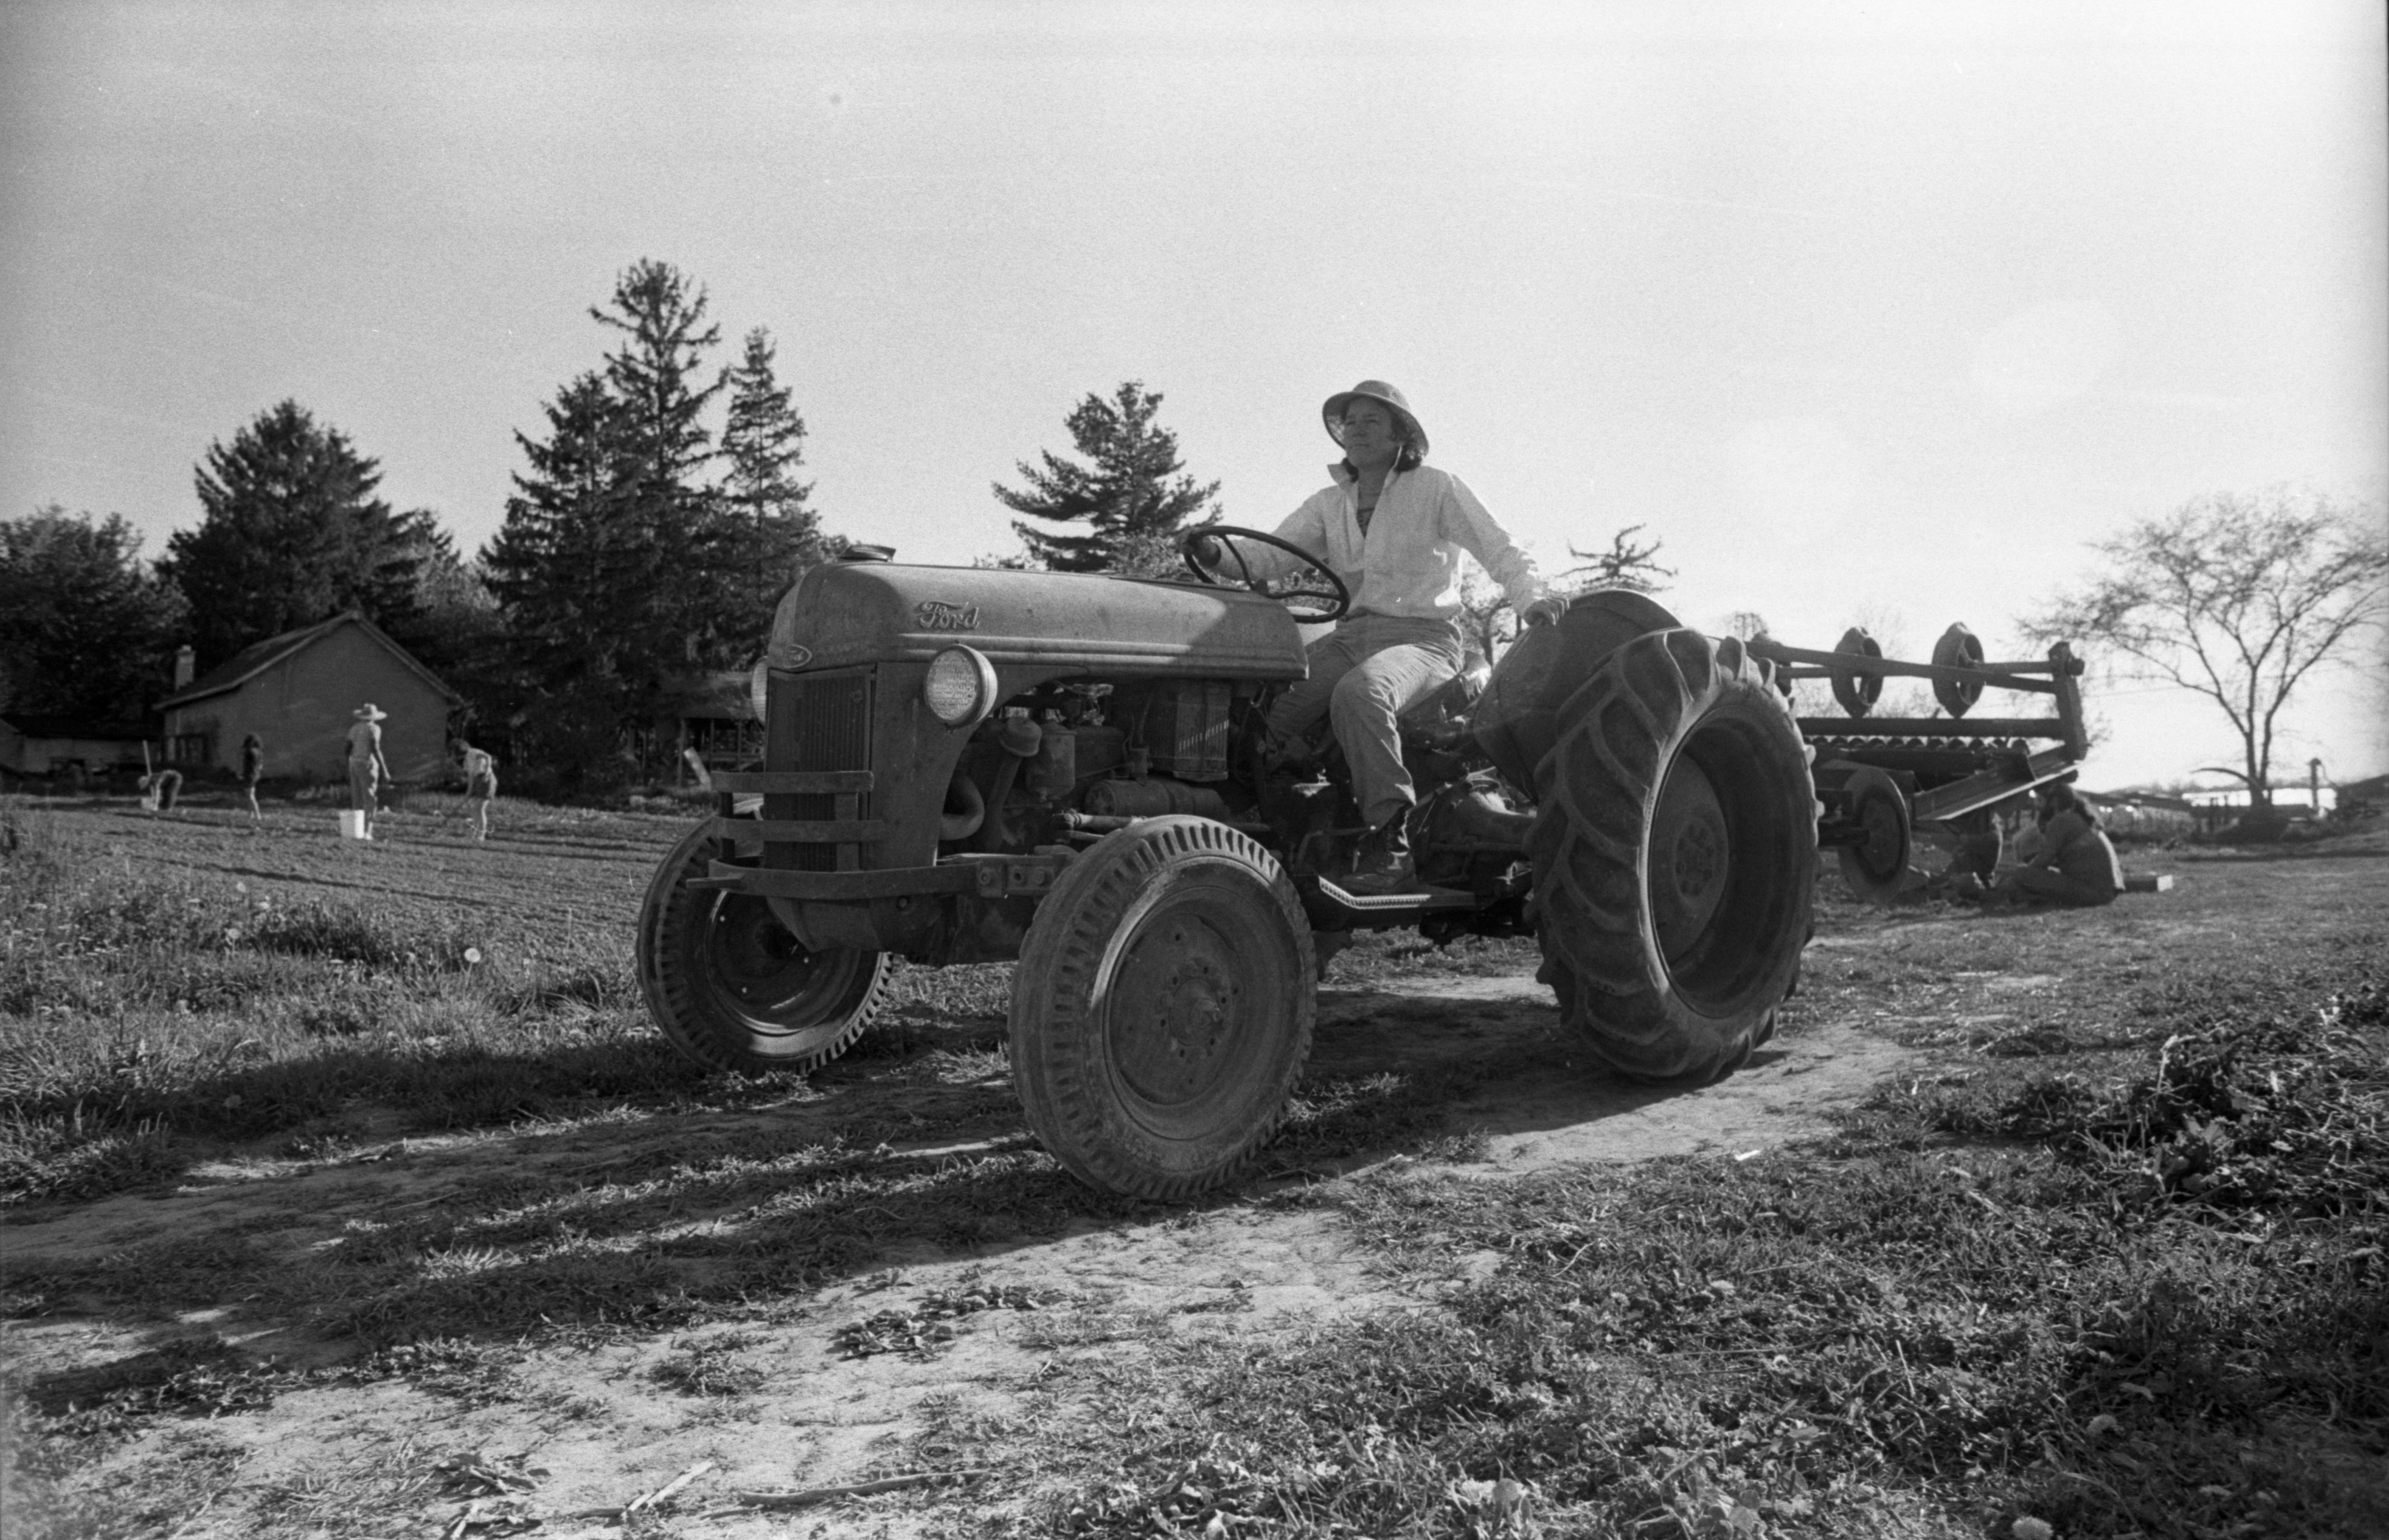 Marcia Barton Drives The Tractor At Community Farm, May 14, 1988 image